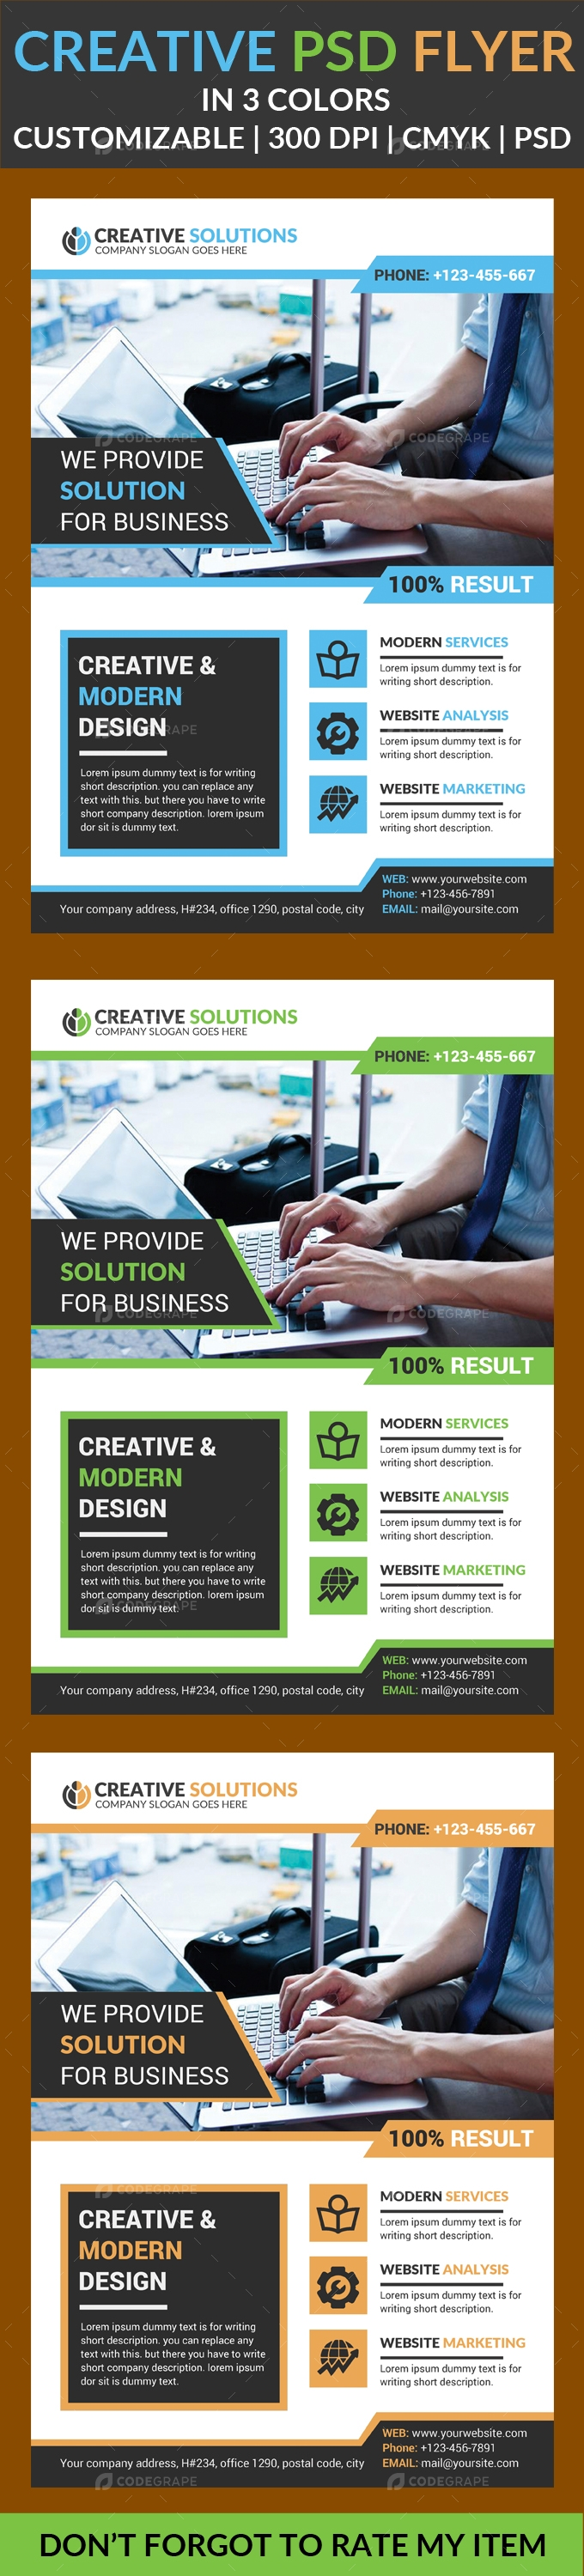 Creative PSD Flyer